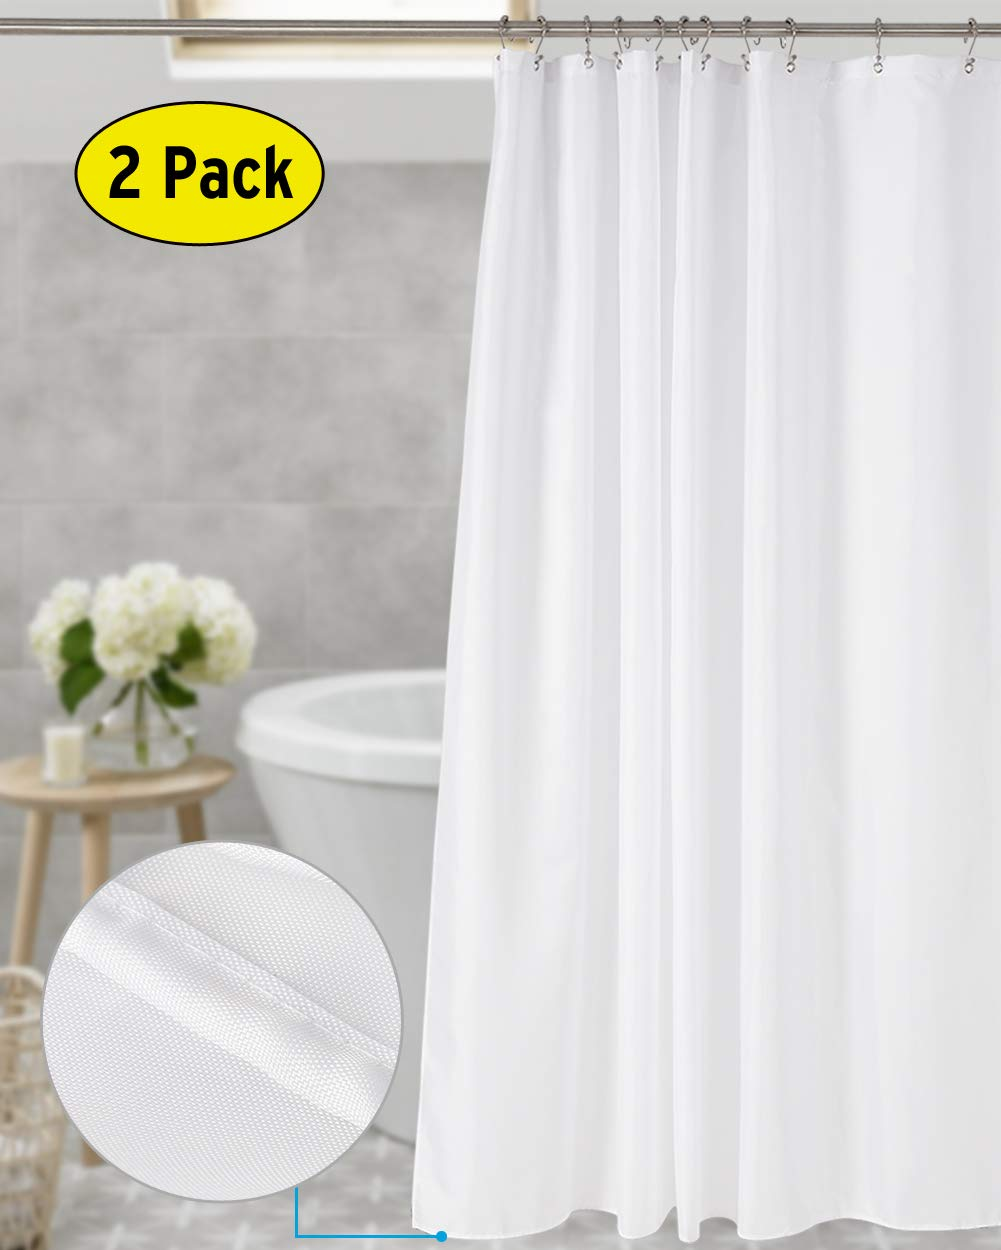 Amazer 2 Pack Shower Curtain White Polyester Fabric Liner Hotel Quality Bathroom